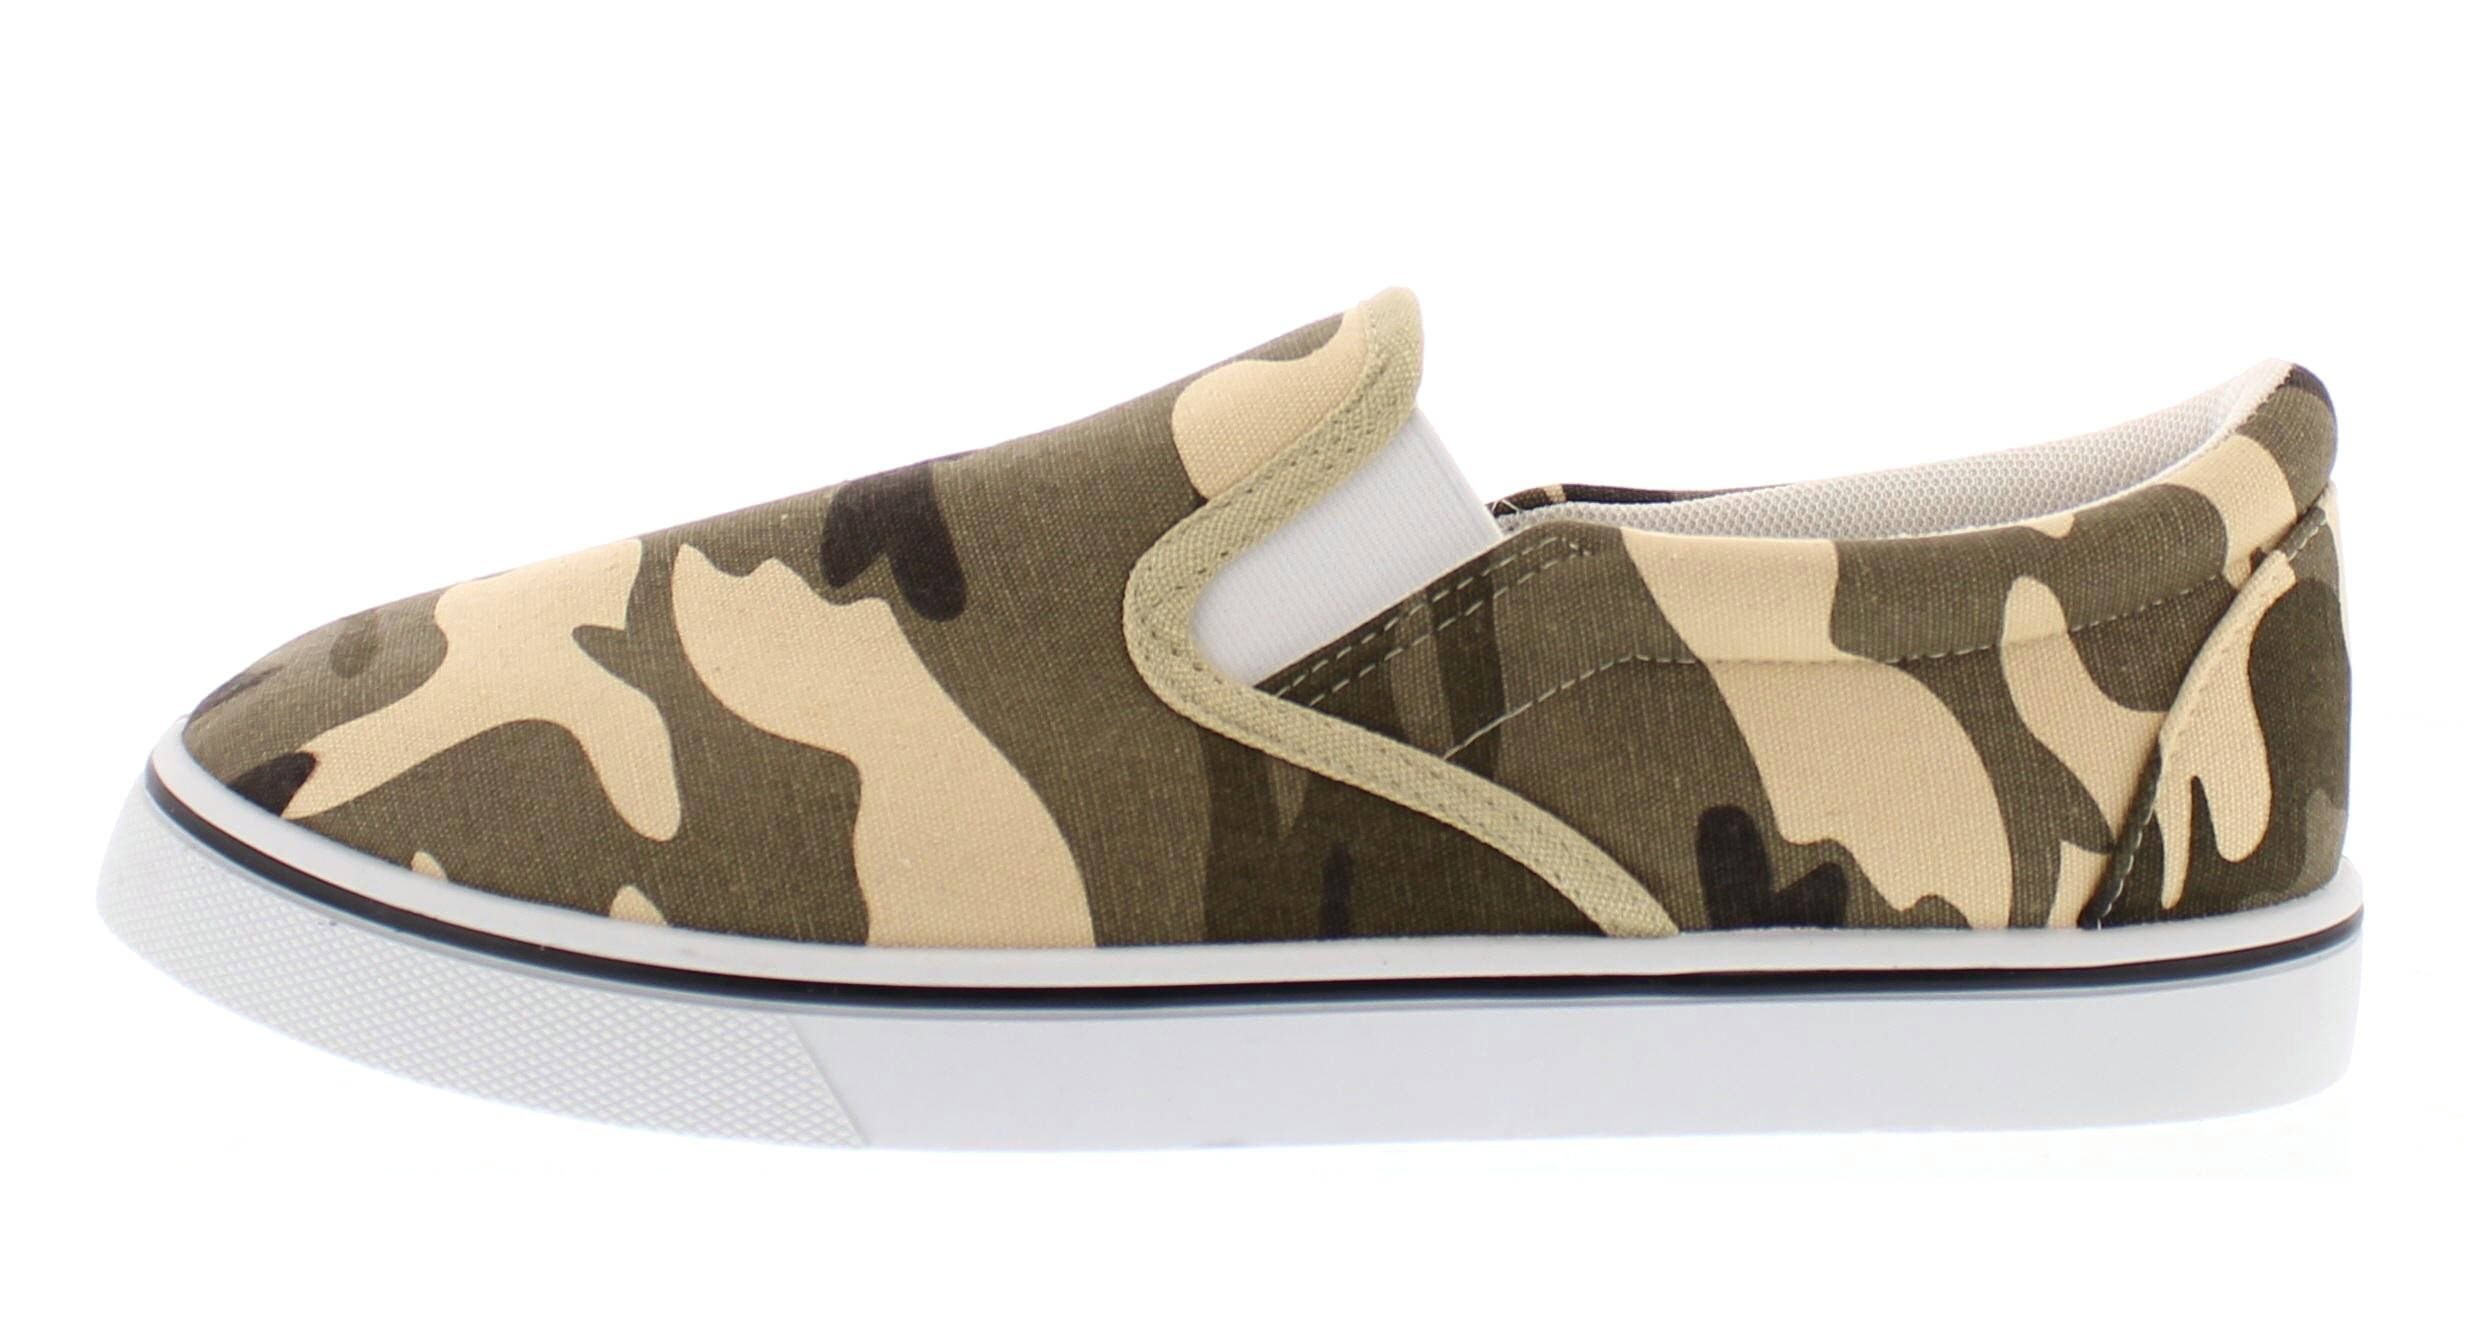 Gold Toe Doug Mens Slip On Shoes Casual,Memory Foam Sneakers for Men,Canvas Shoe,Men's Deck Shoes,Skate Shoes Camouflage 9.5W US by Gold Toe (Image #3)